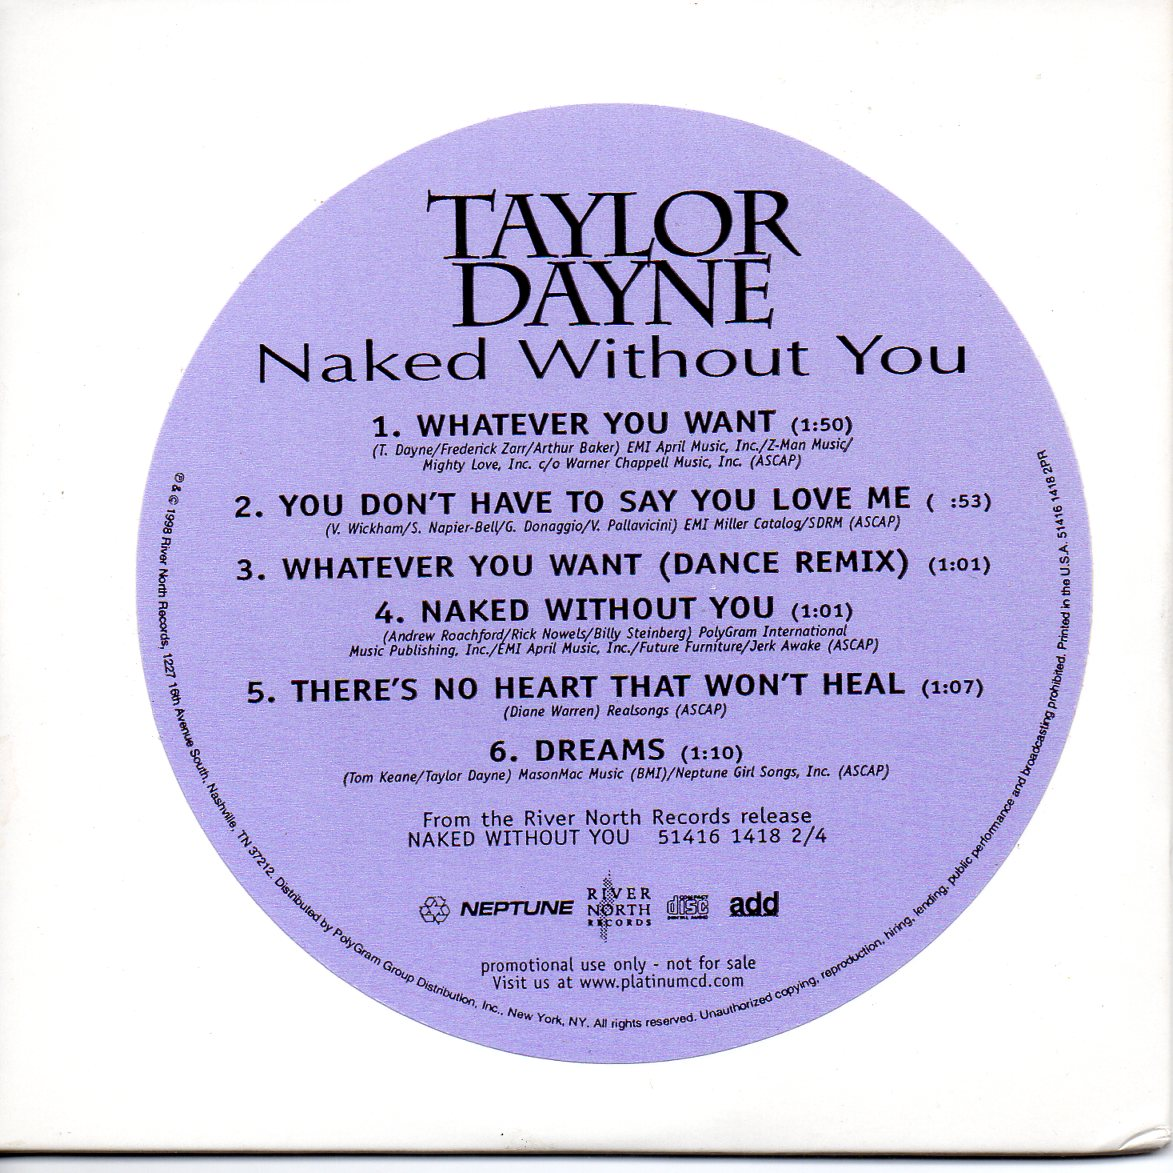 Naked Without You